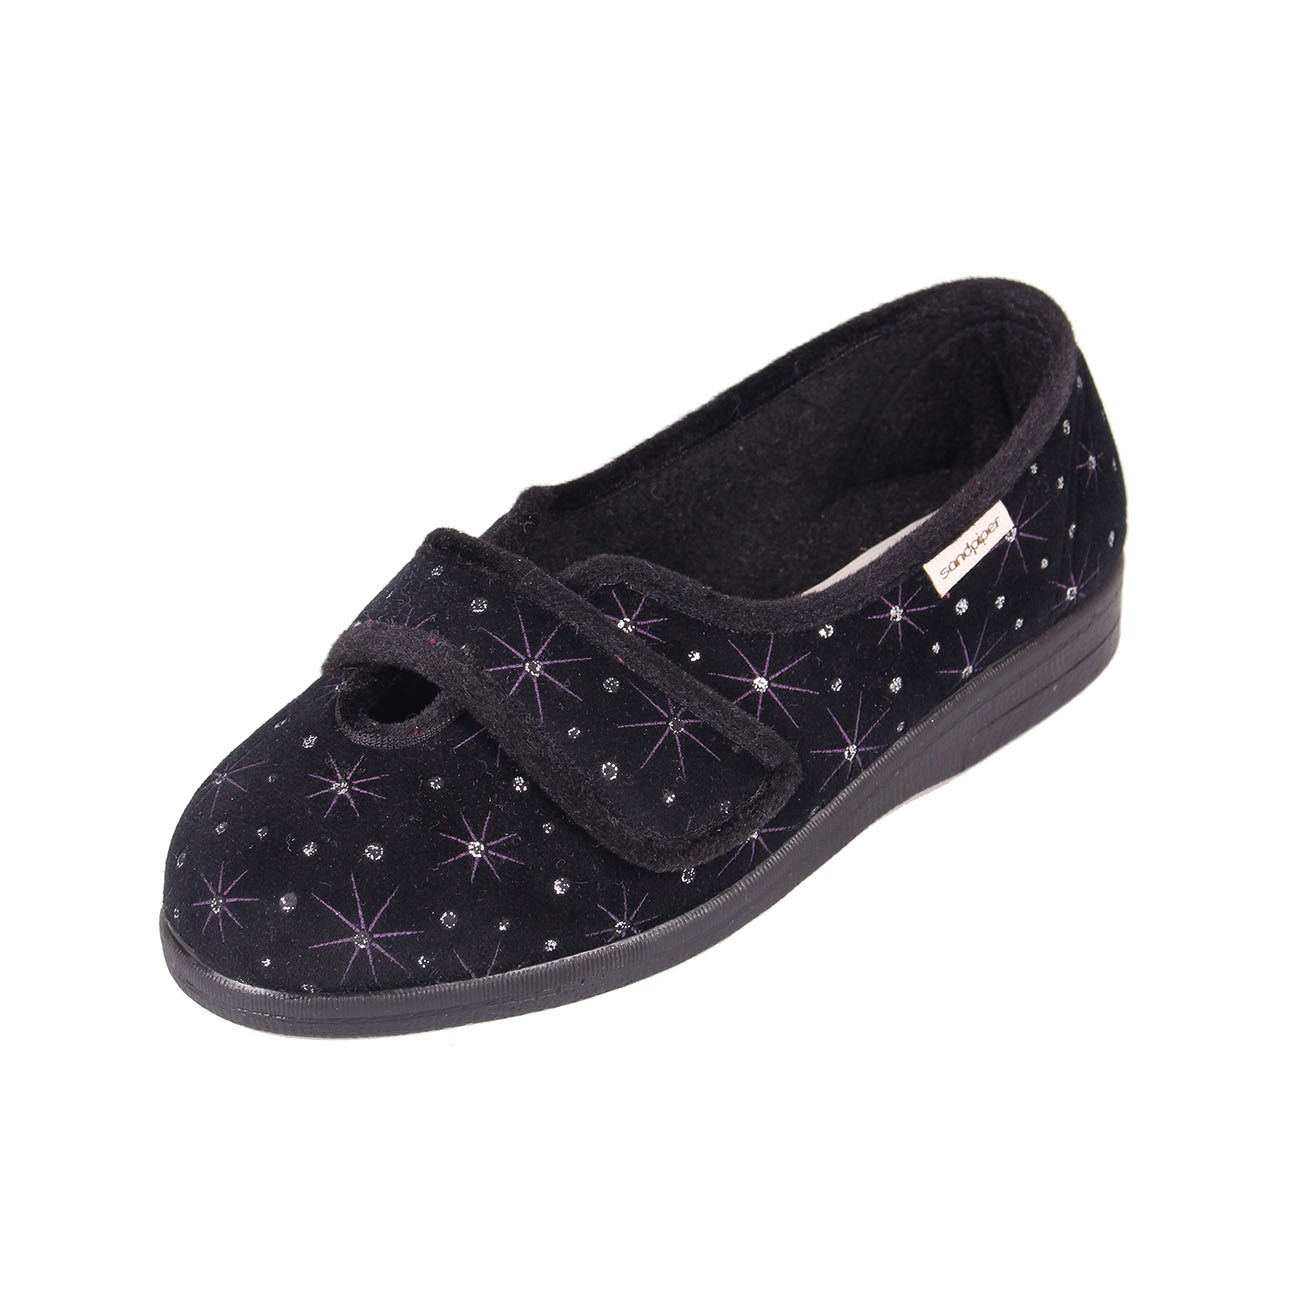 Sadie Ladies Black Starburst Slipper